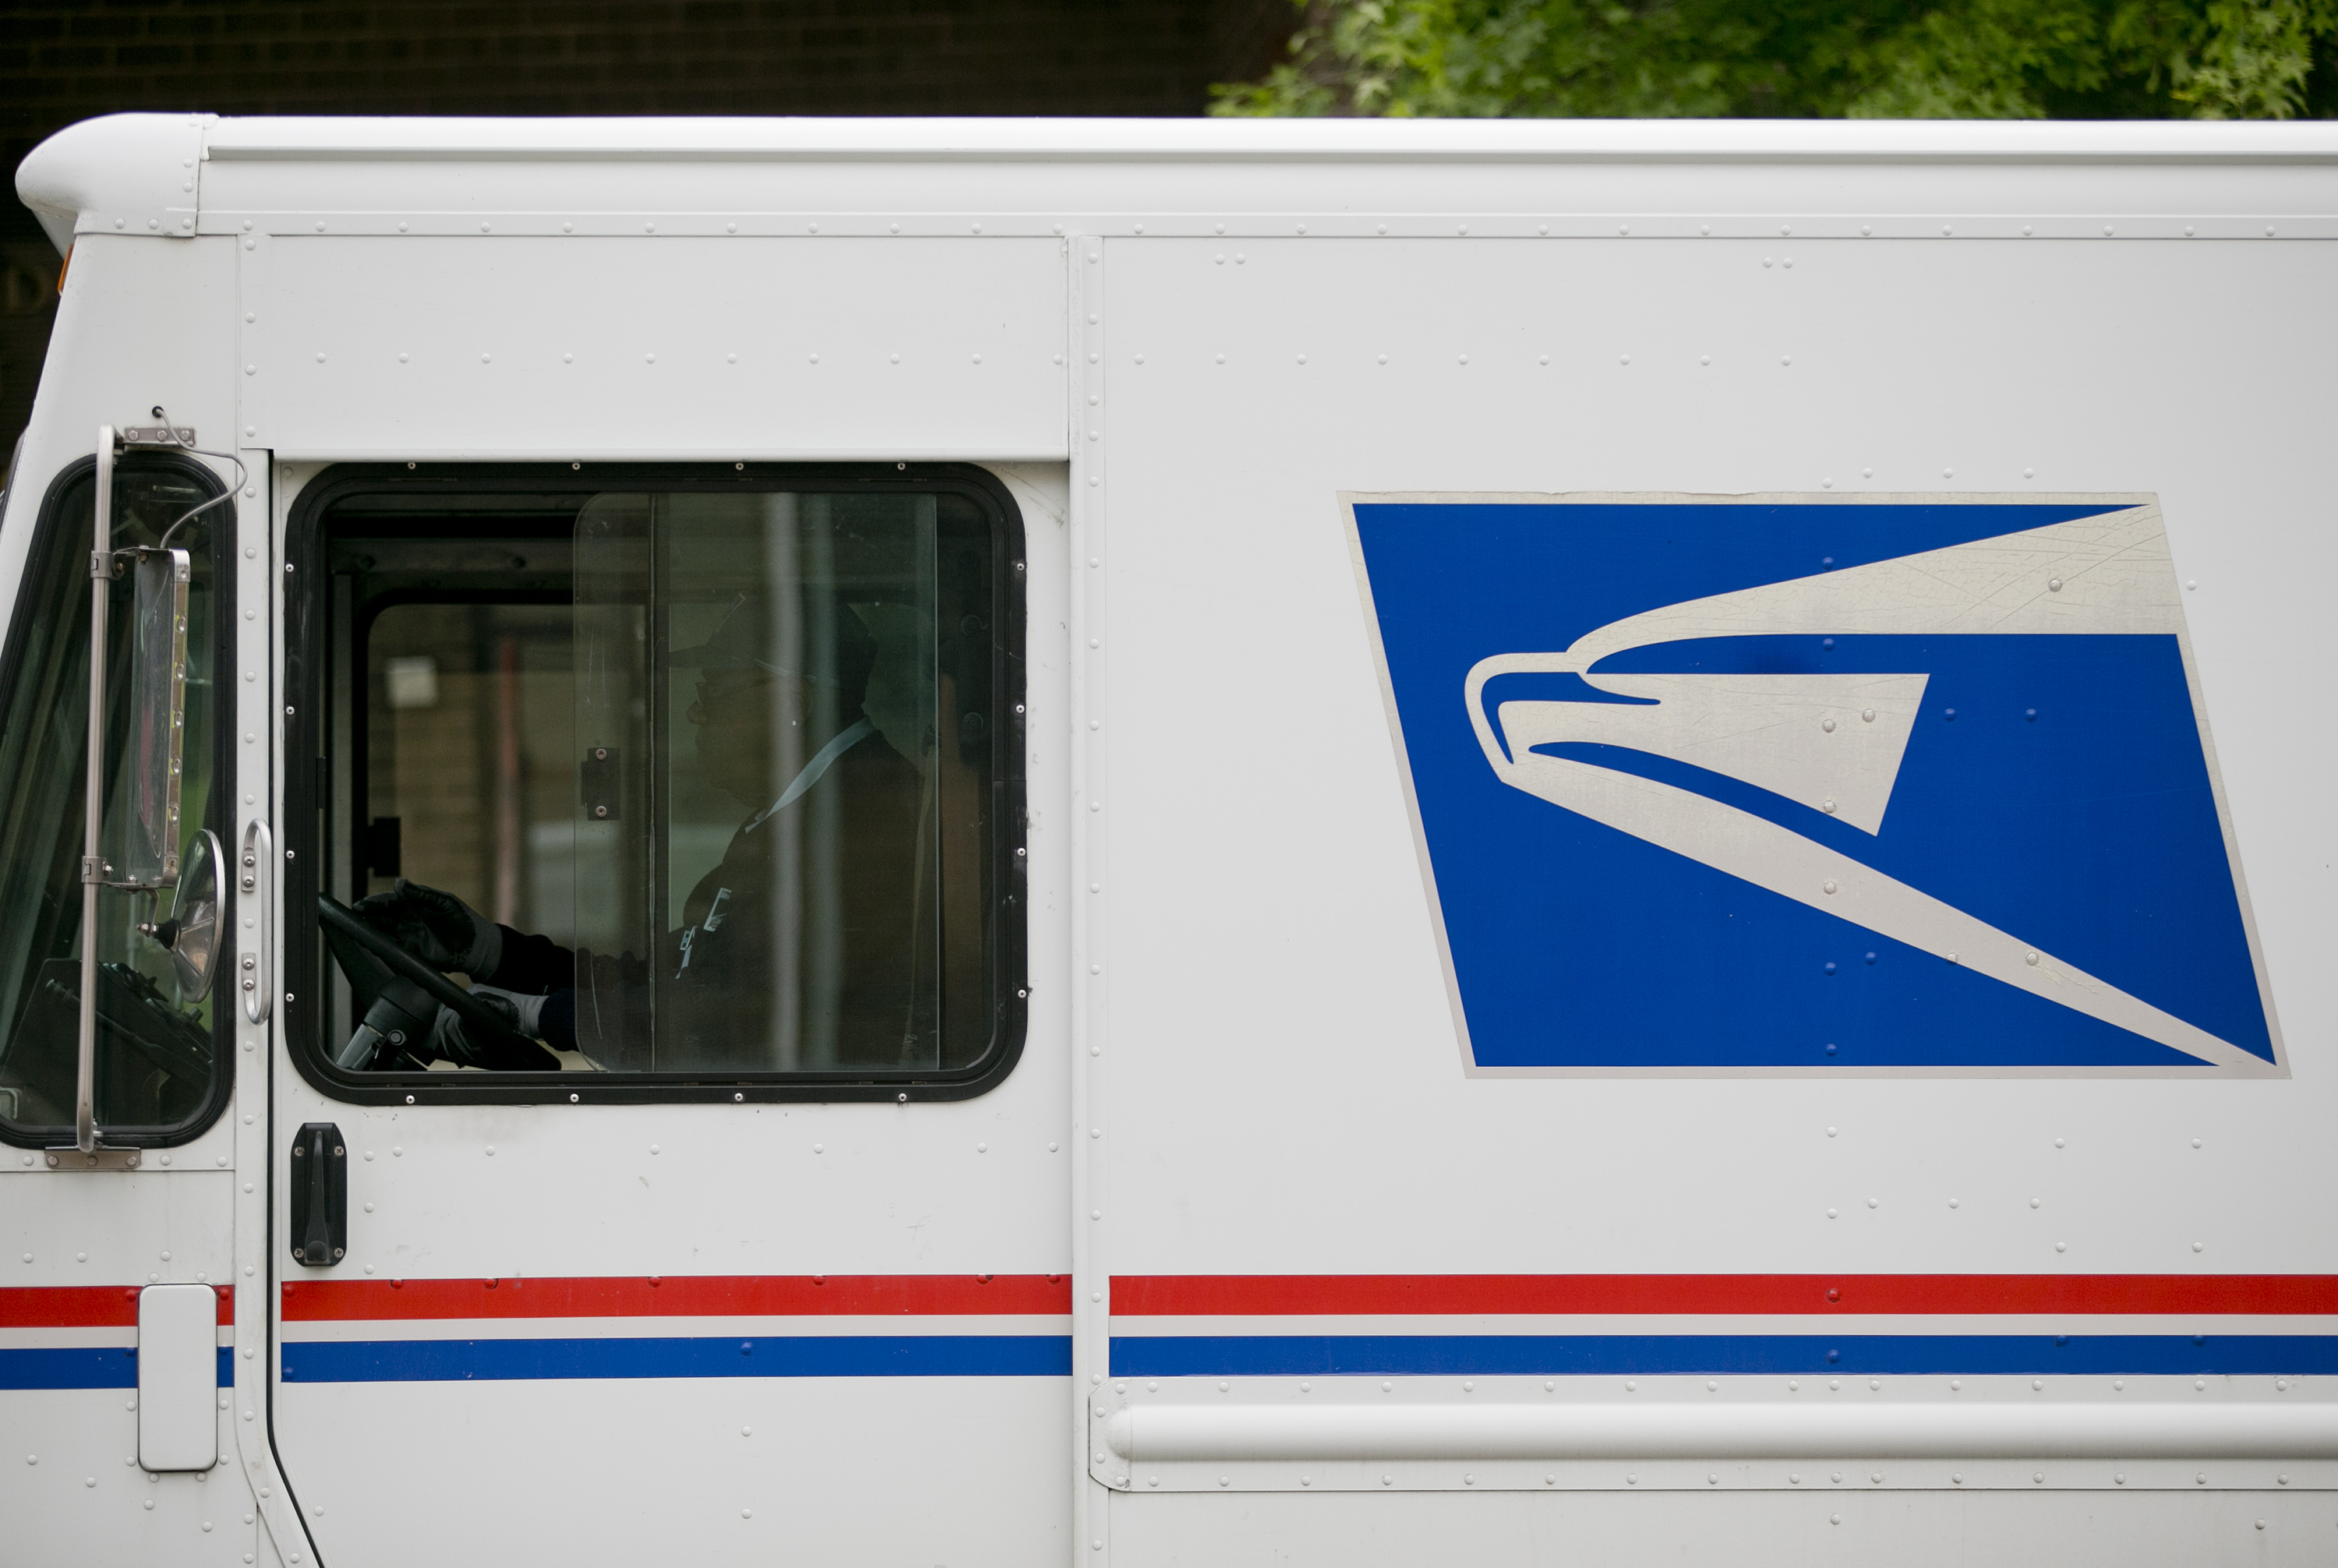 The U.S. Postal Service (USPS) logo is seen on the side of a delivery truck in Washington, D.C., U.S., on Thursday, May 9, 2013.